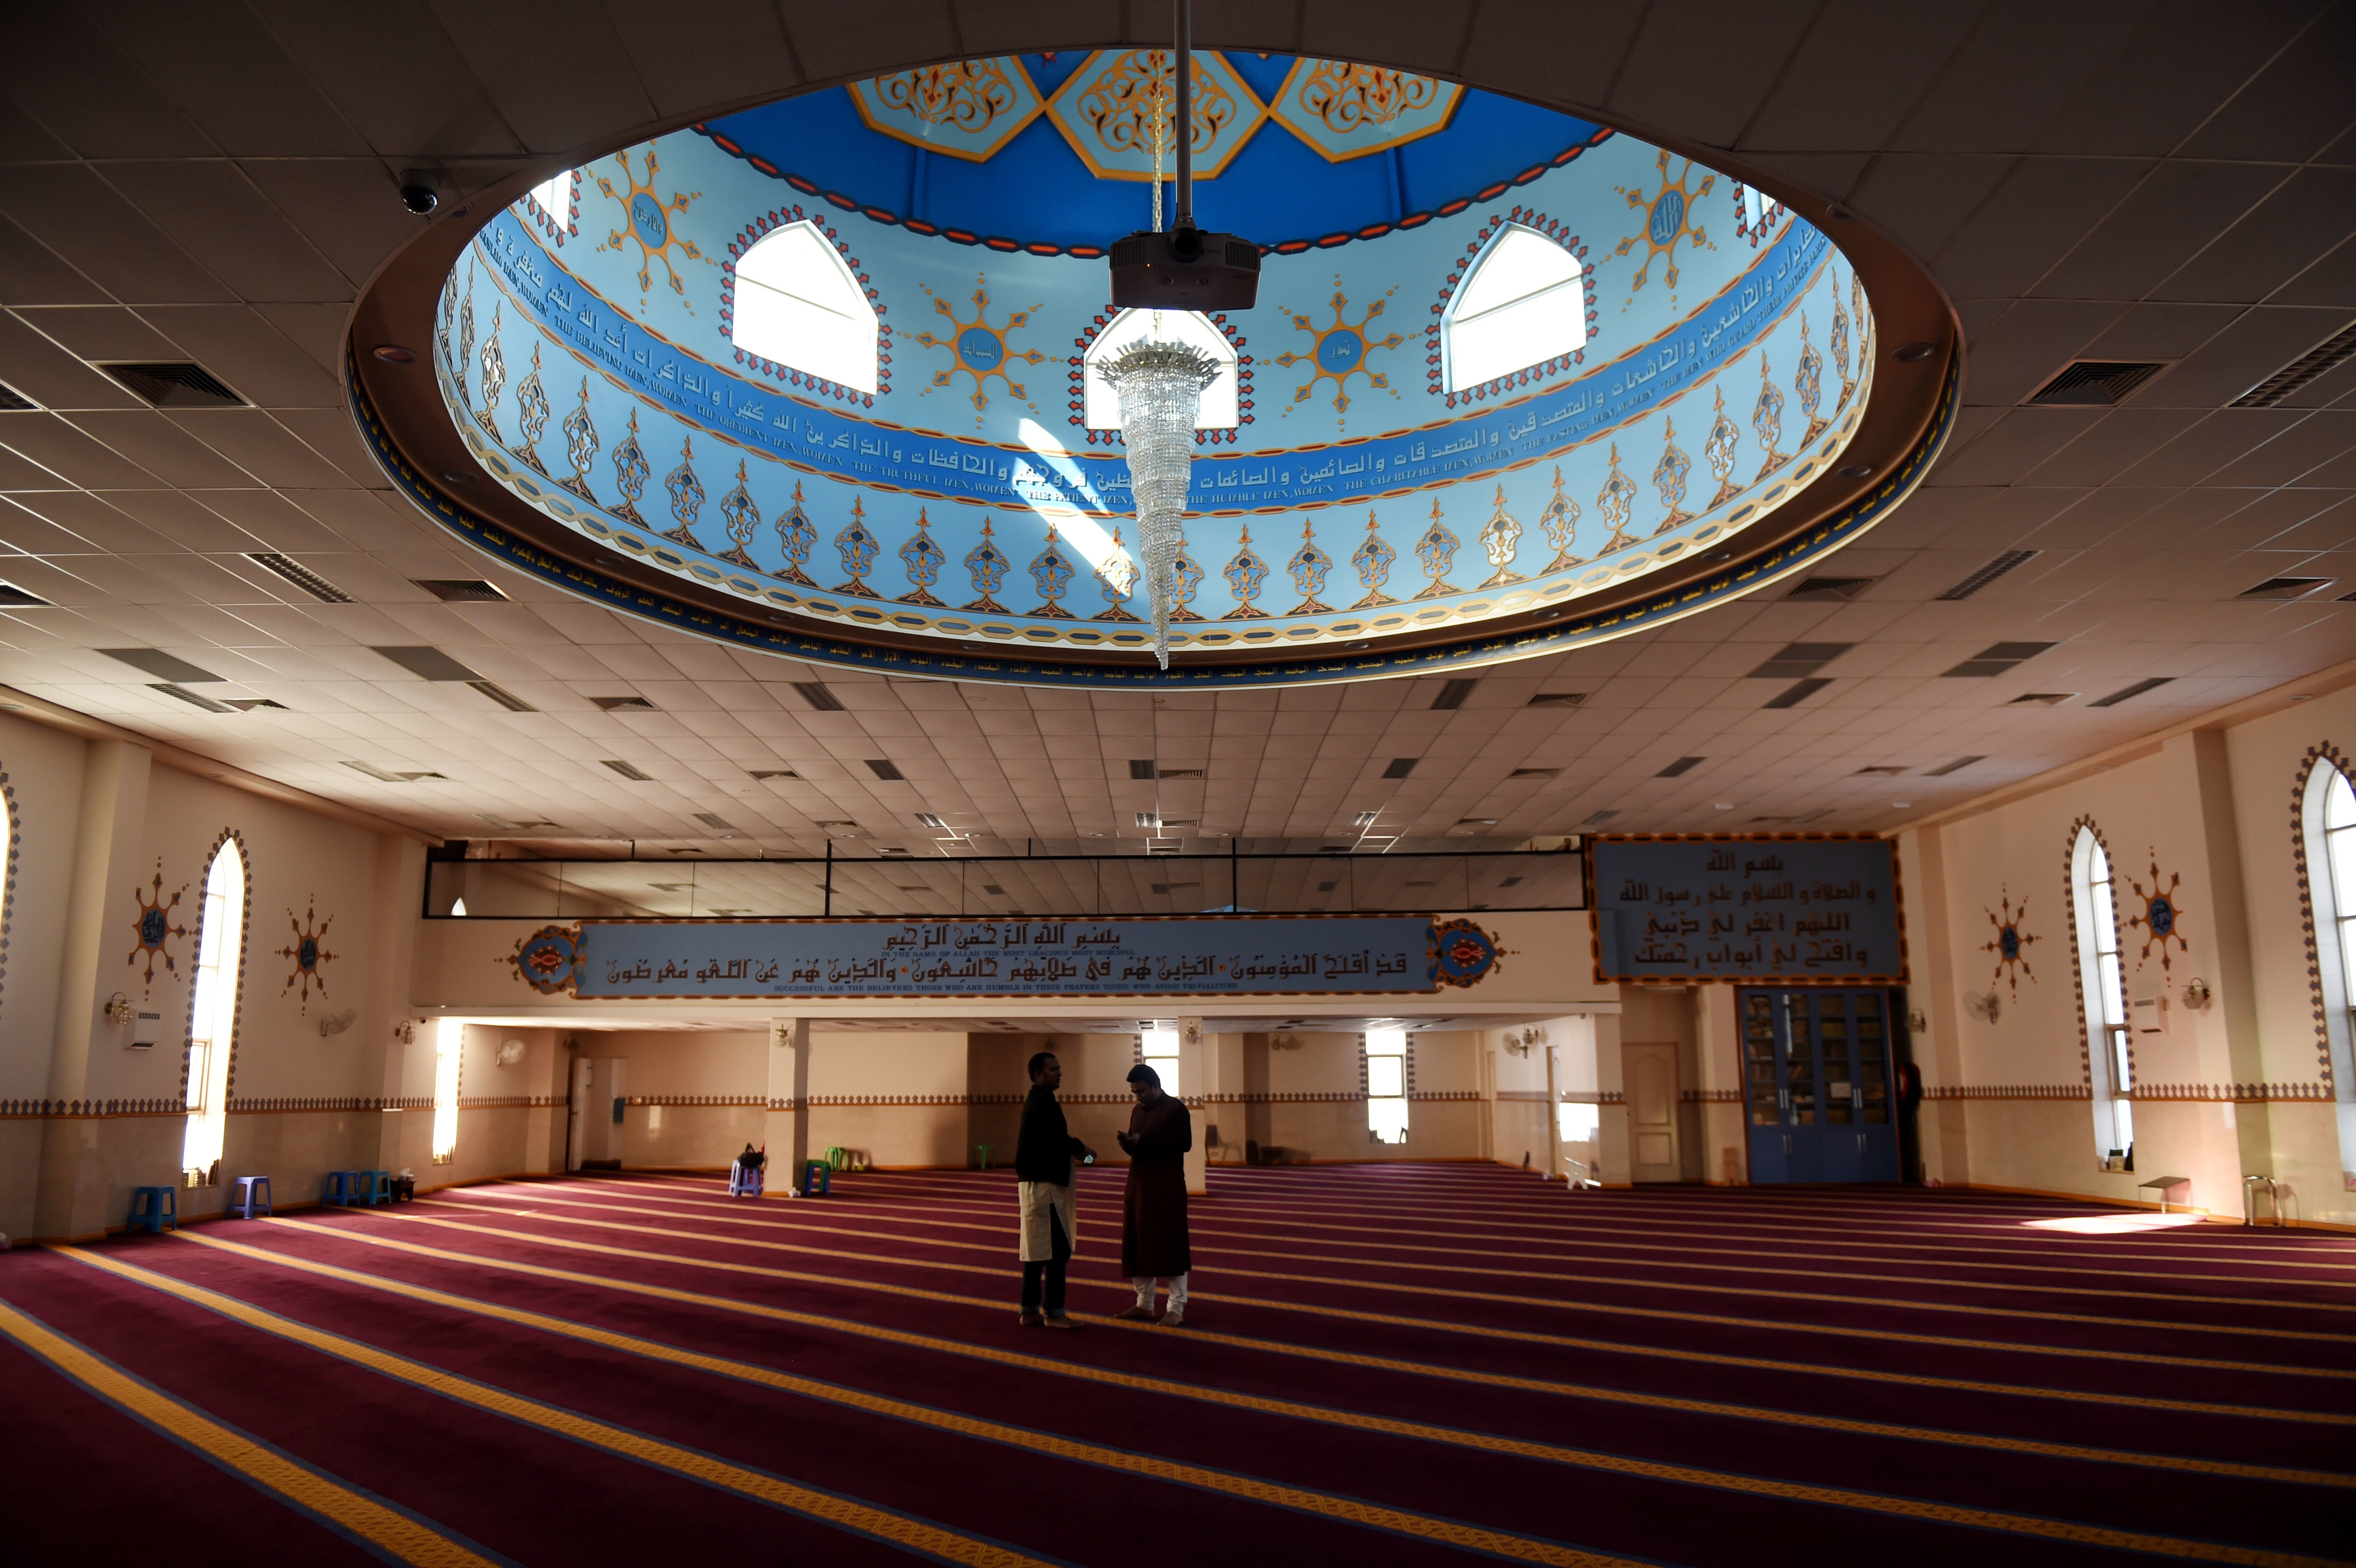 Men gather to pray at Lakemba Mosque in Sydney, Friday, Aug. 22, 2014. (AAP Image/Tracey Nearmy) NO ARCHIVING, EDITORIAL USE ONLY